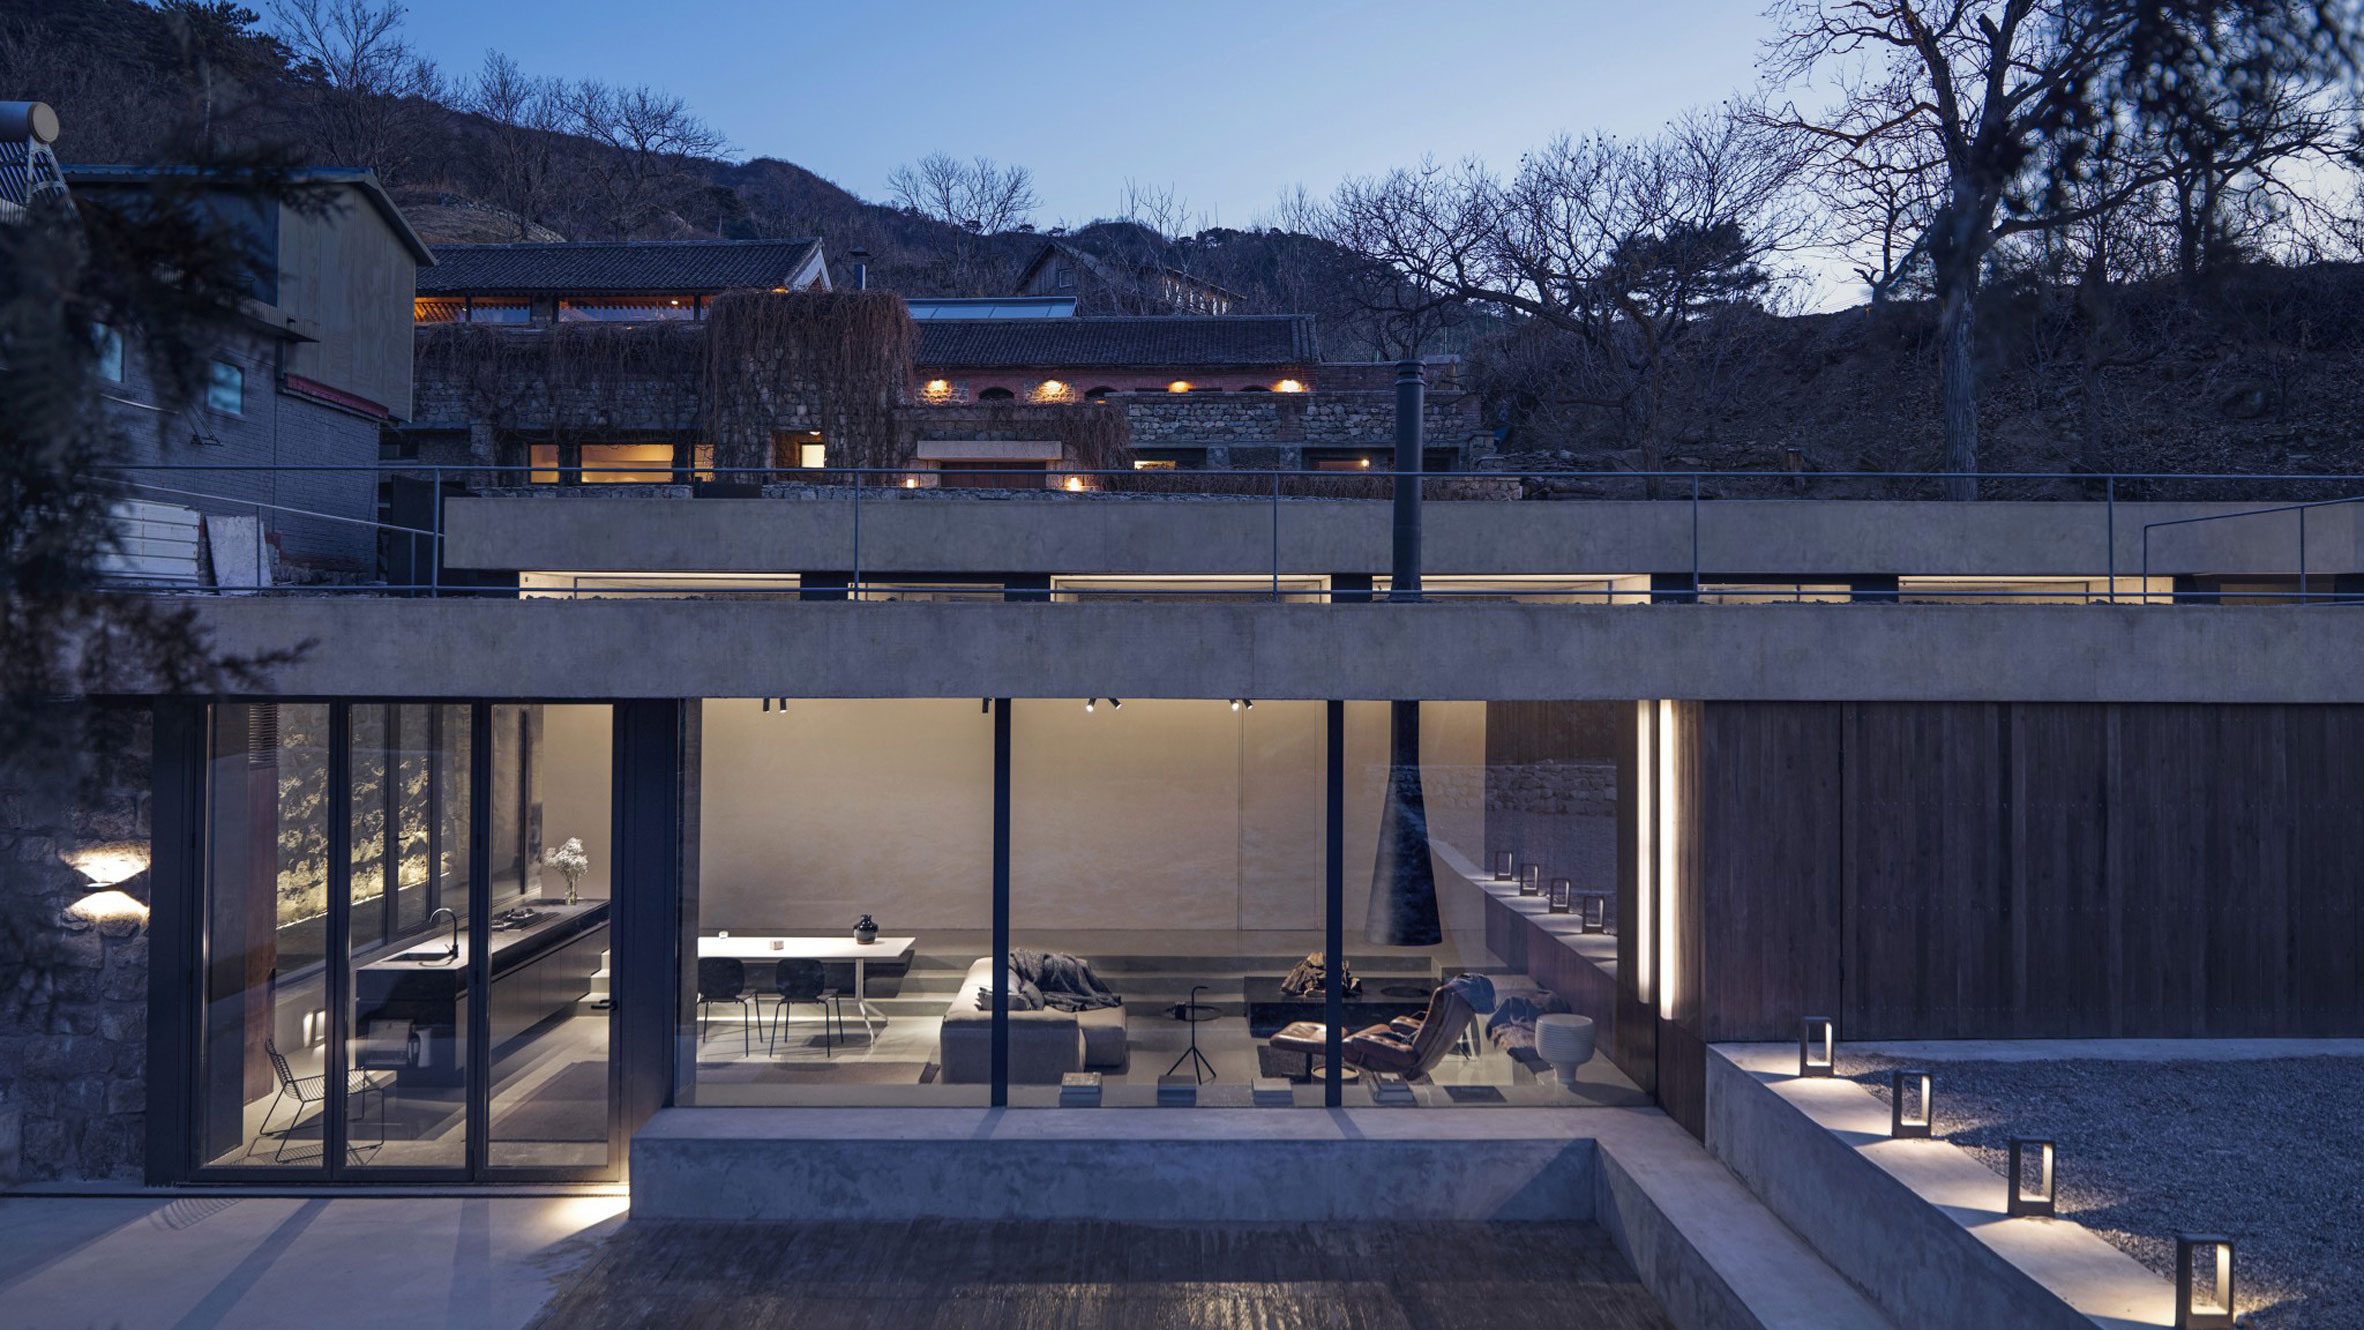 House on the Great Wall, Beijing, China, byMDDM Studio